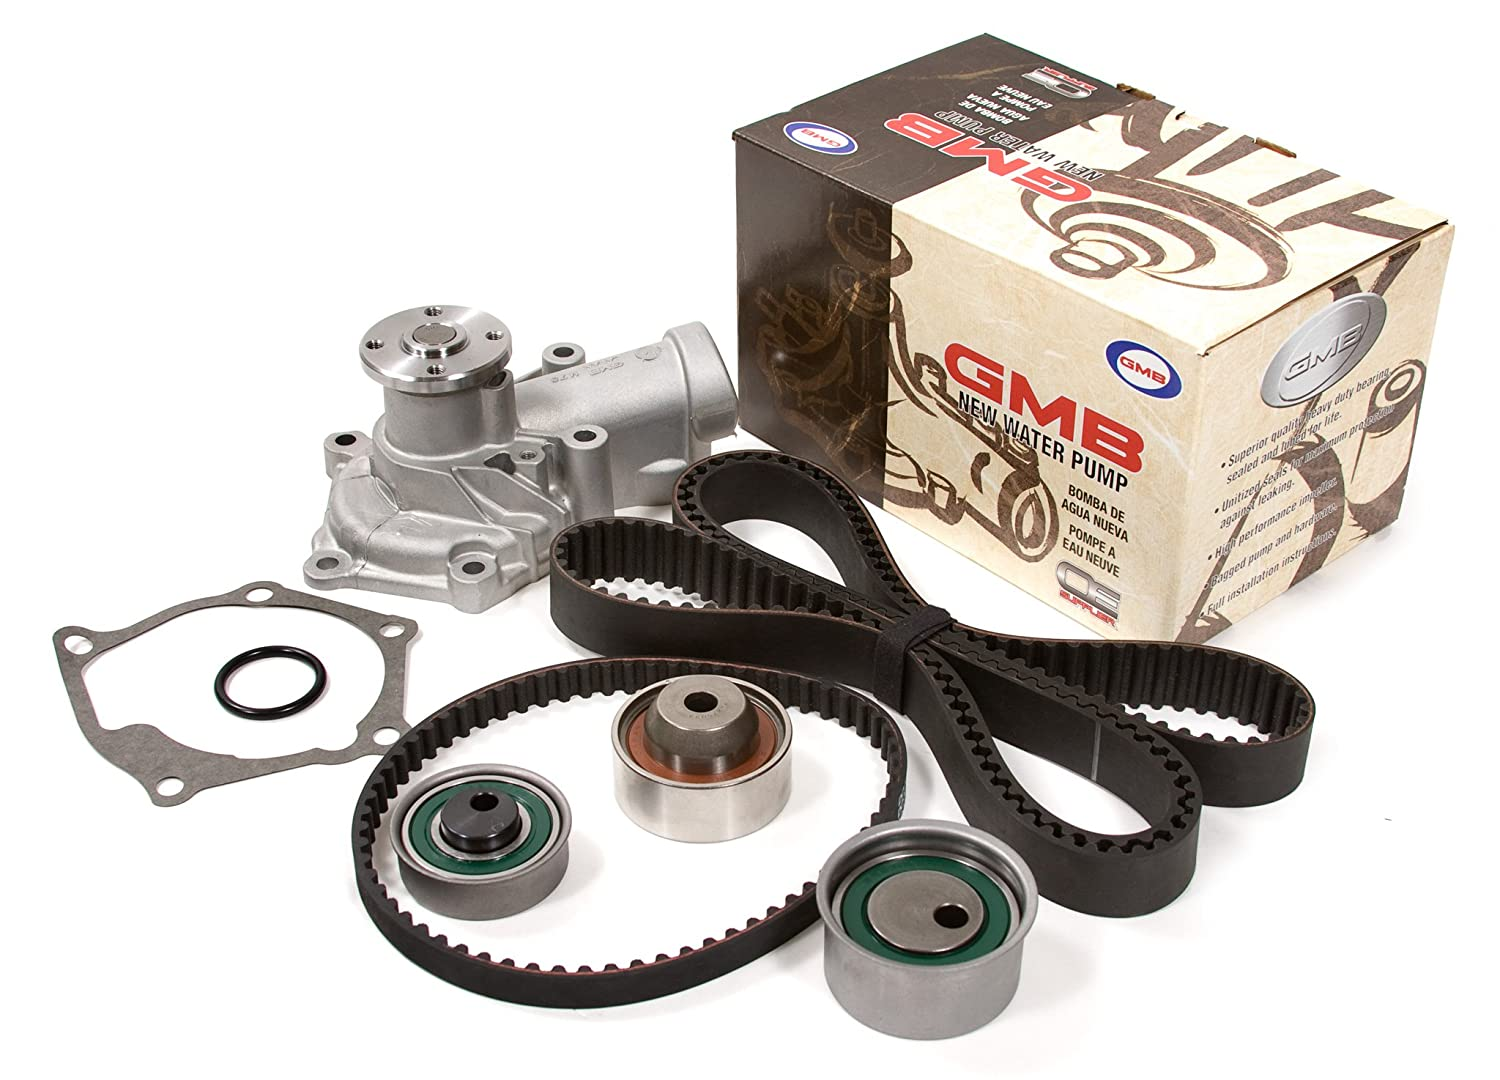 Evergreen Tbk332wp 04 07 Mitsubishi Eclipse Galant Timing Belt Kit Outlander 24l 4g69 Gmb Water Pump Automotive